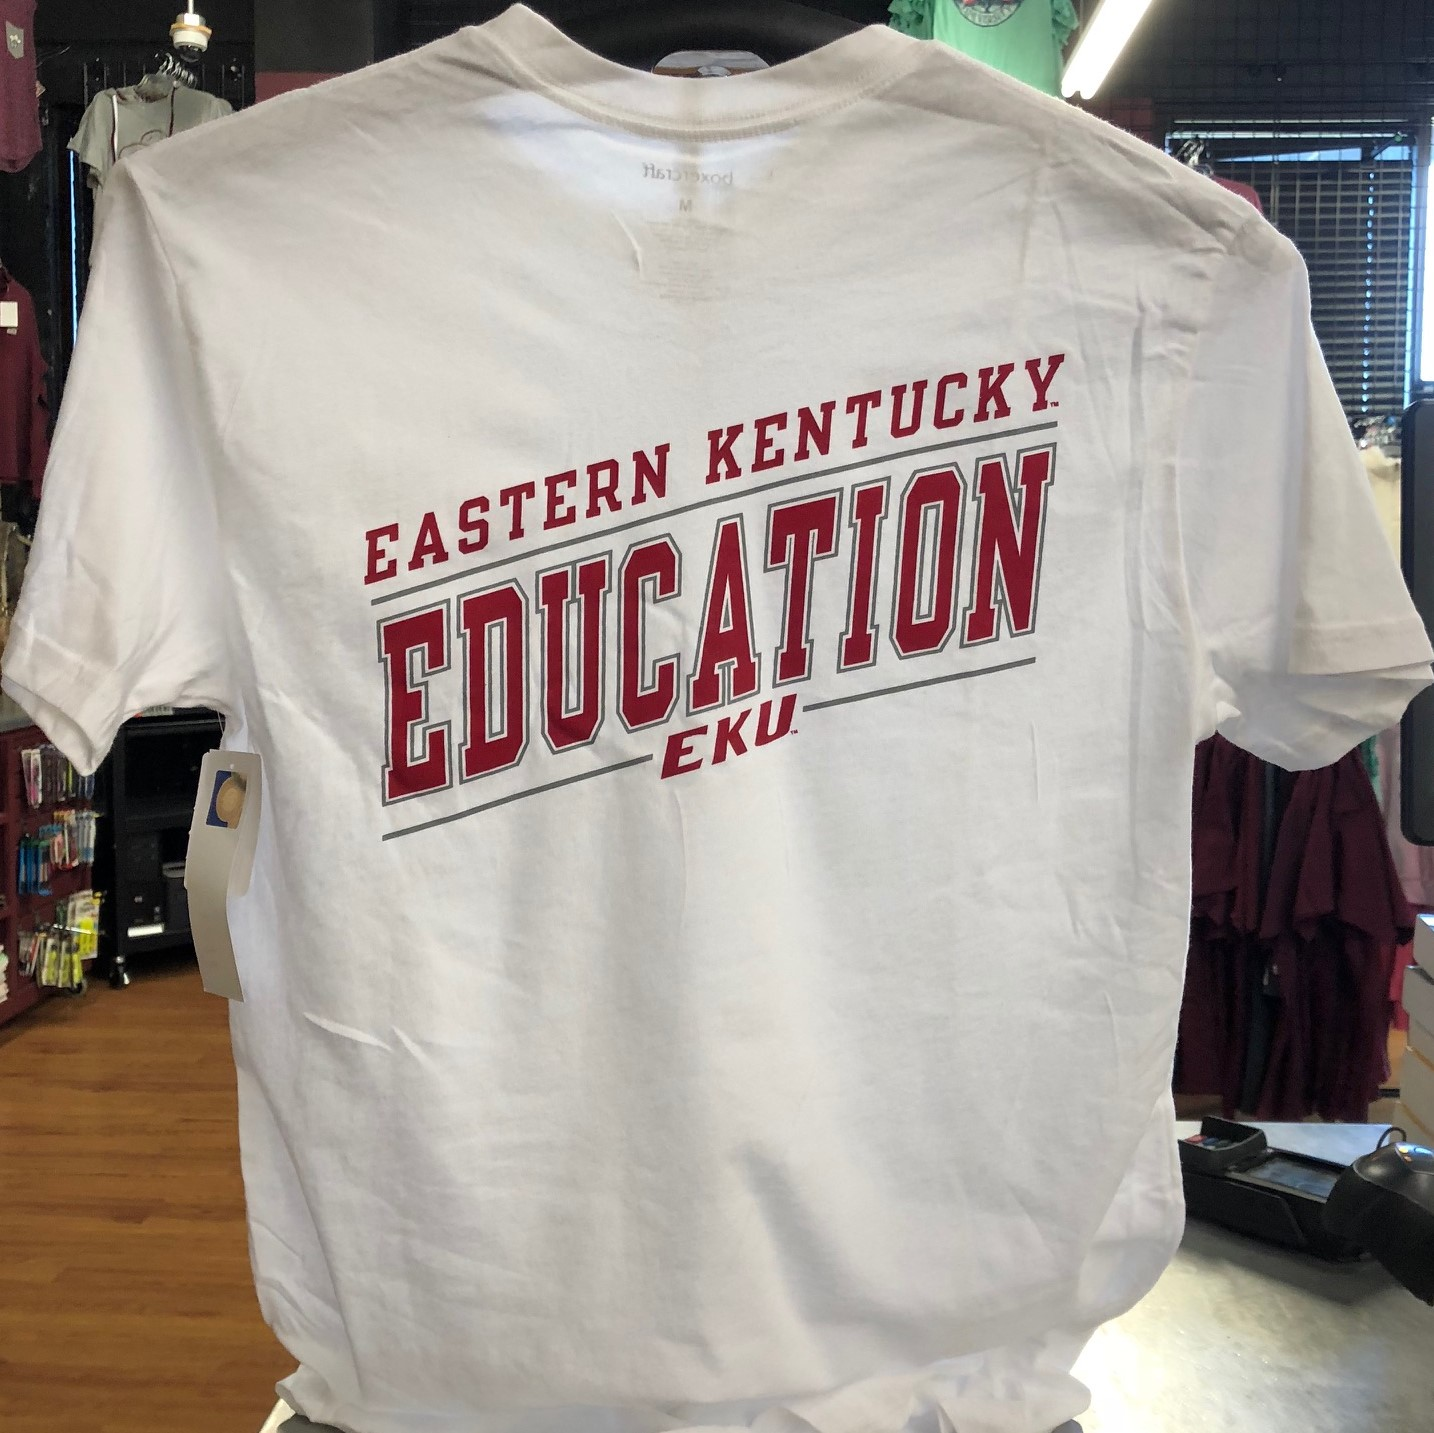 EDUCATION TEE